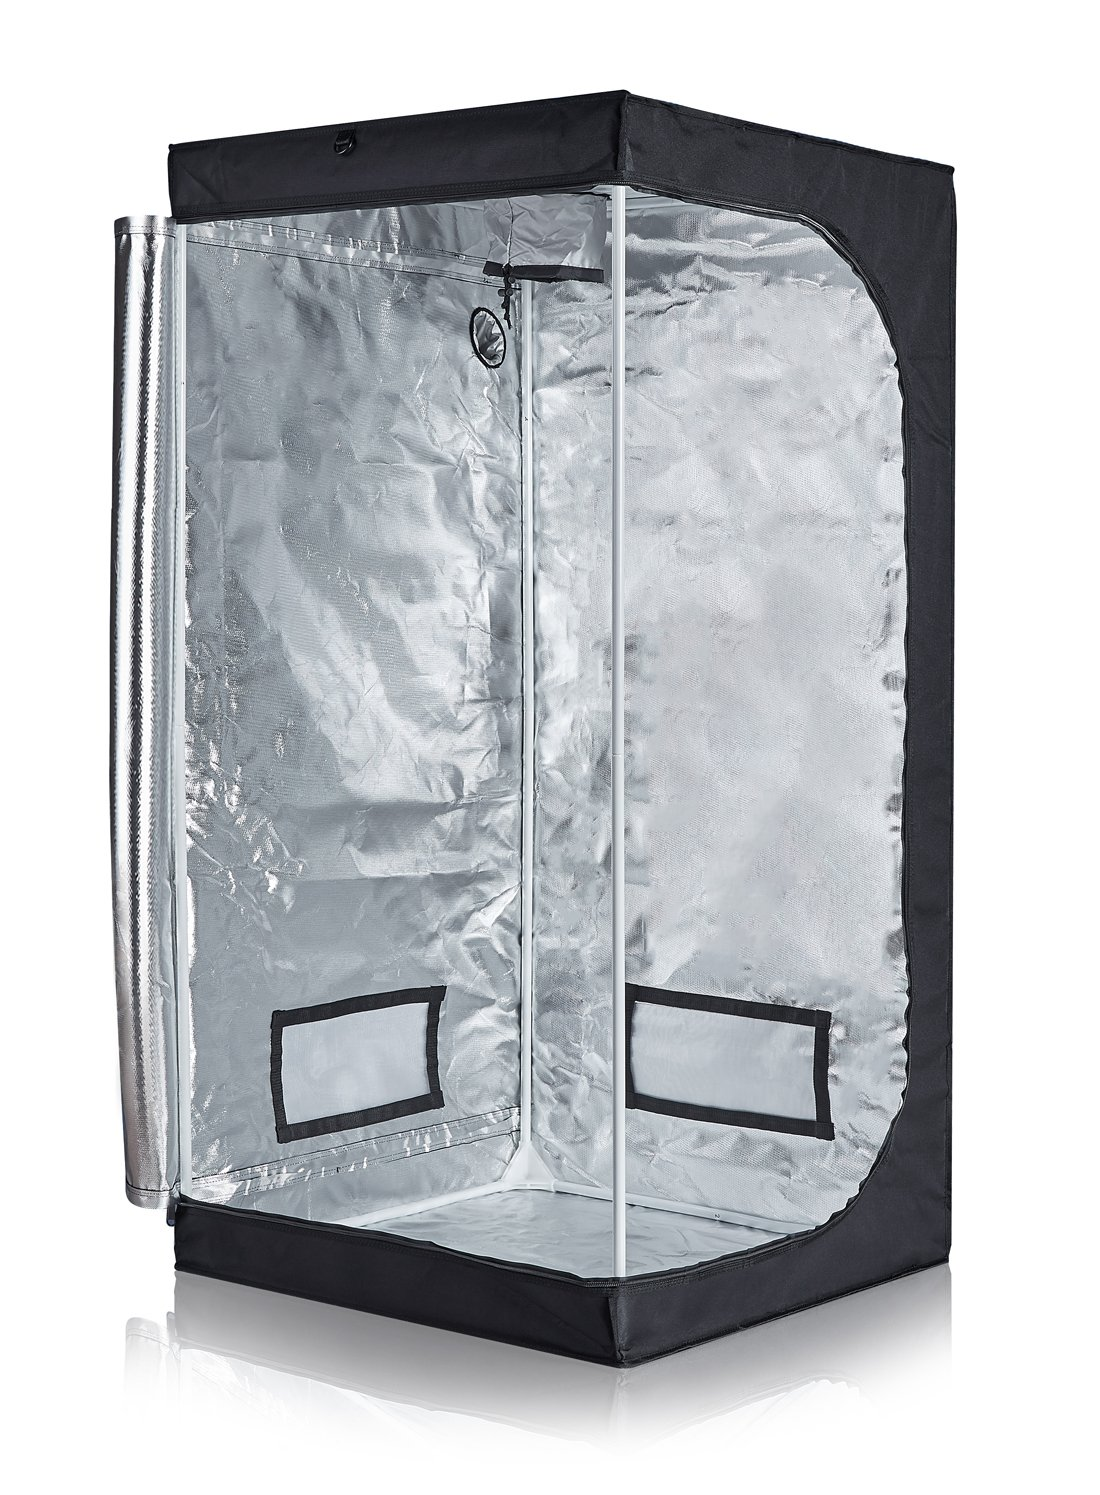 TopoLite 32 x32 x63 36 x36 x72 48 x24 x60 48 x48 x80 96 x48 x80 Grow Tent Hydroponic Growing Dark Room Grow Box Indoor Planting 32 x32 x63